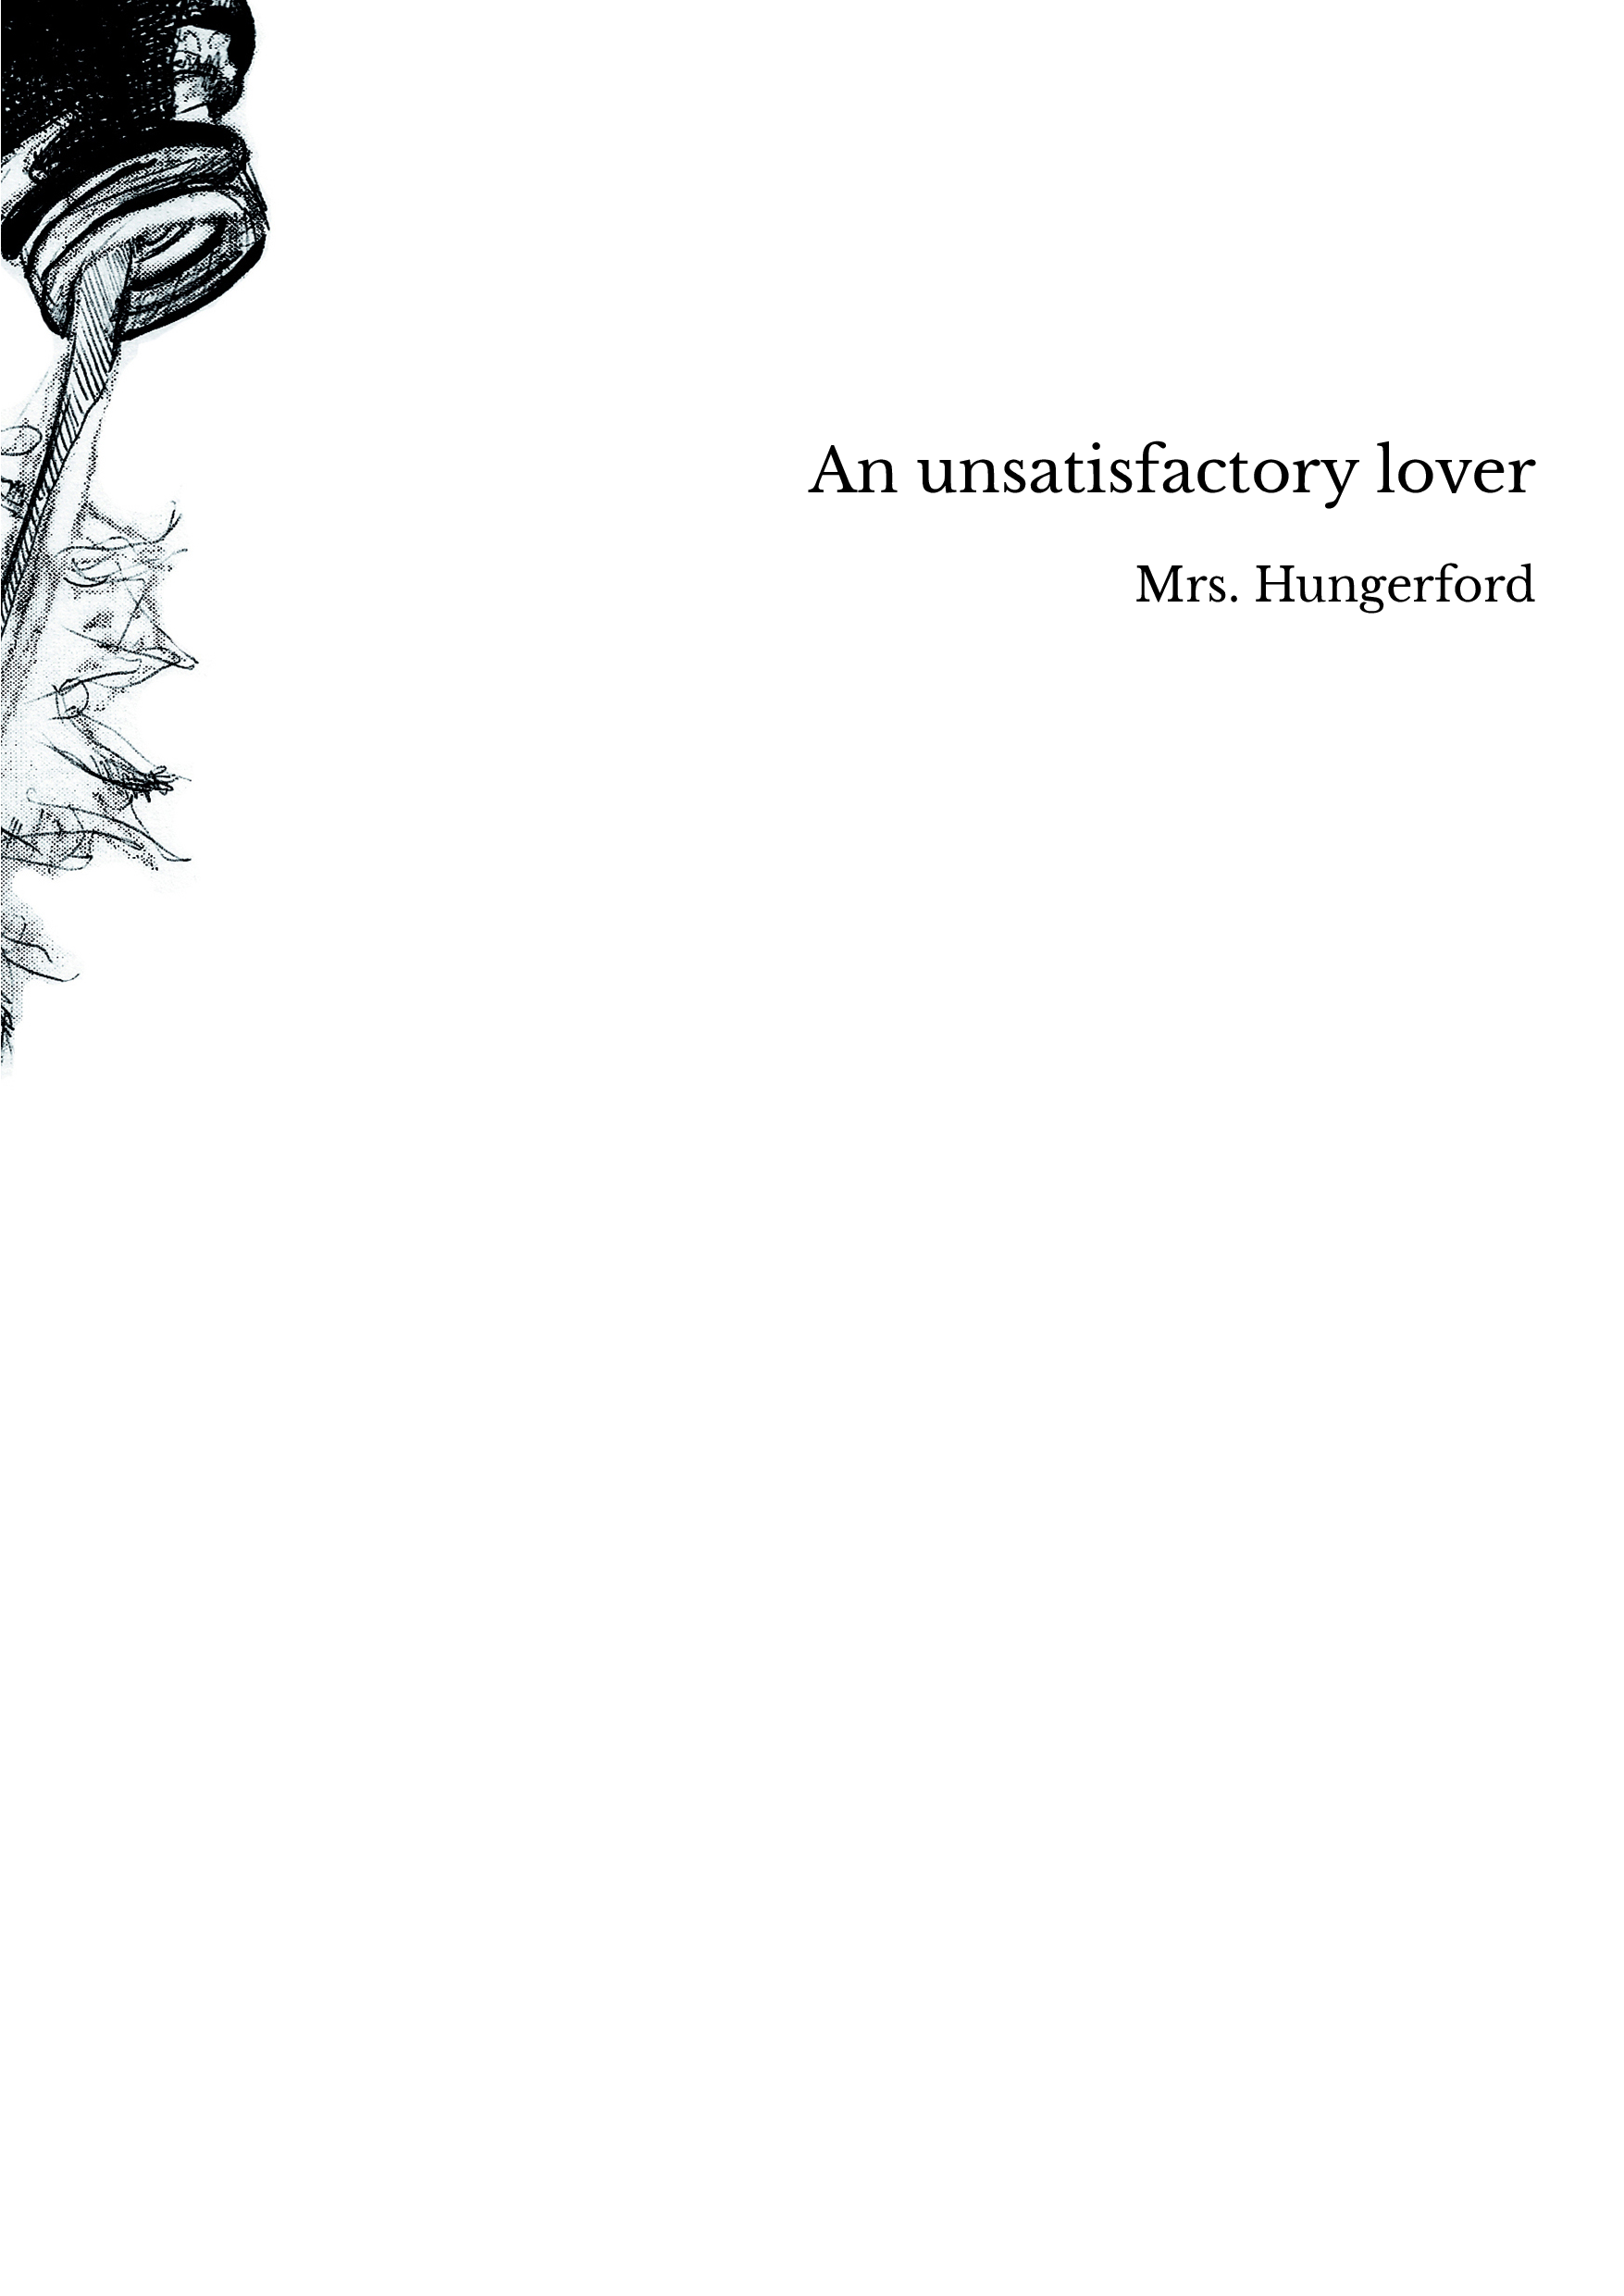 An unsatisfactory lover